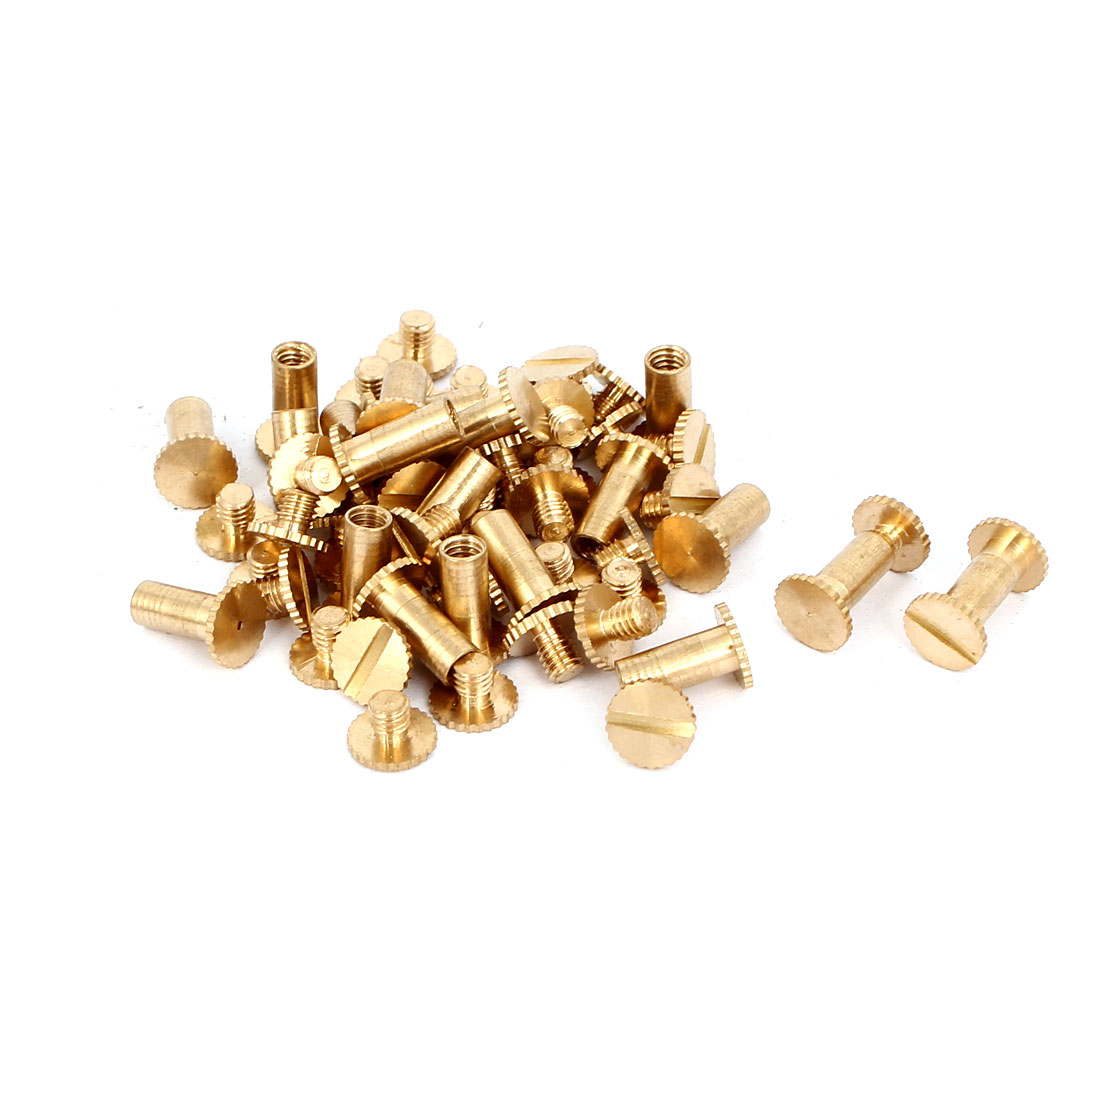 M5x10mm Photo Albums Scrapbook Slotted Knurling Brass Binding Screw Post 30 Pcs